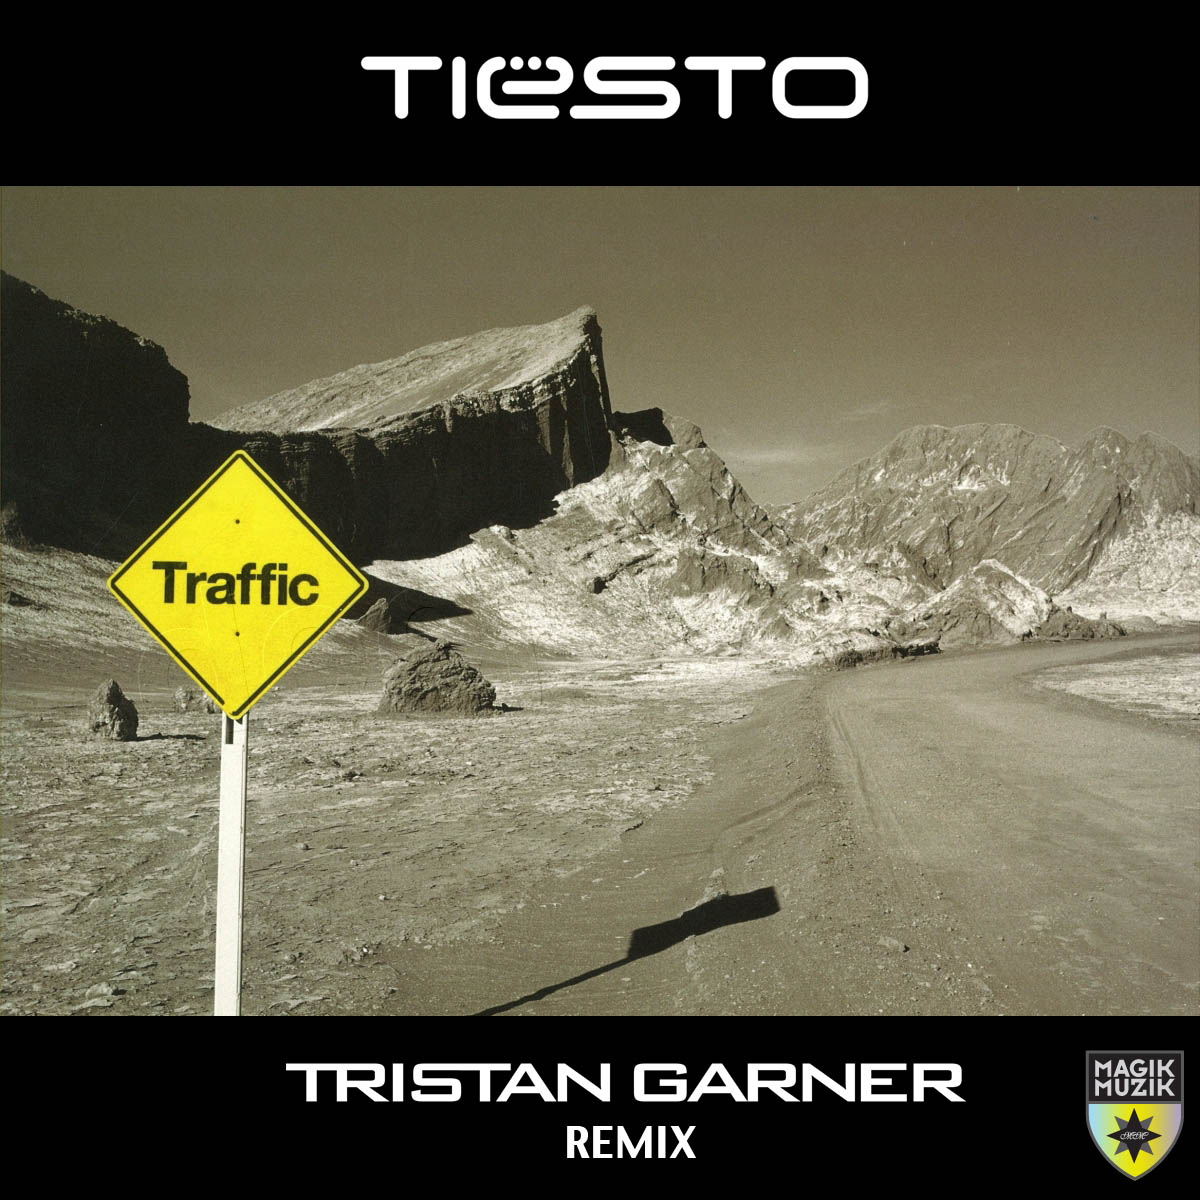 Preview: Tiesto - Traffic (Tristan Garner Remix))